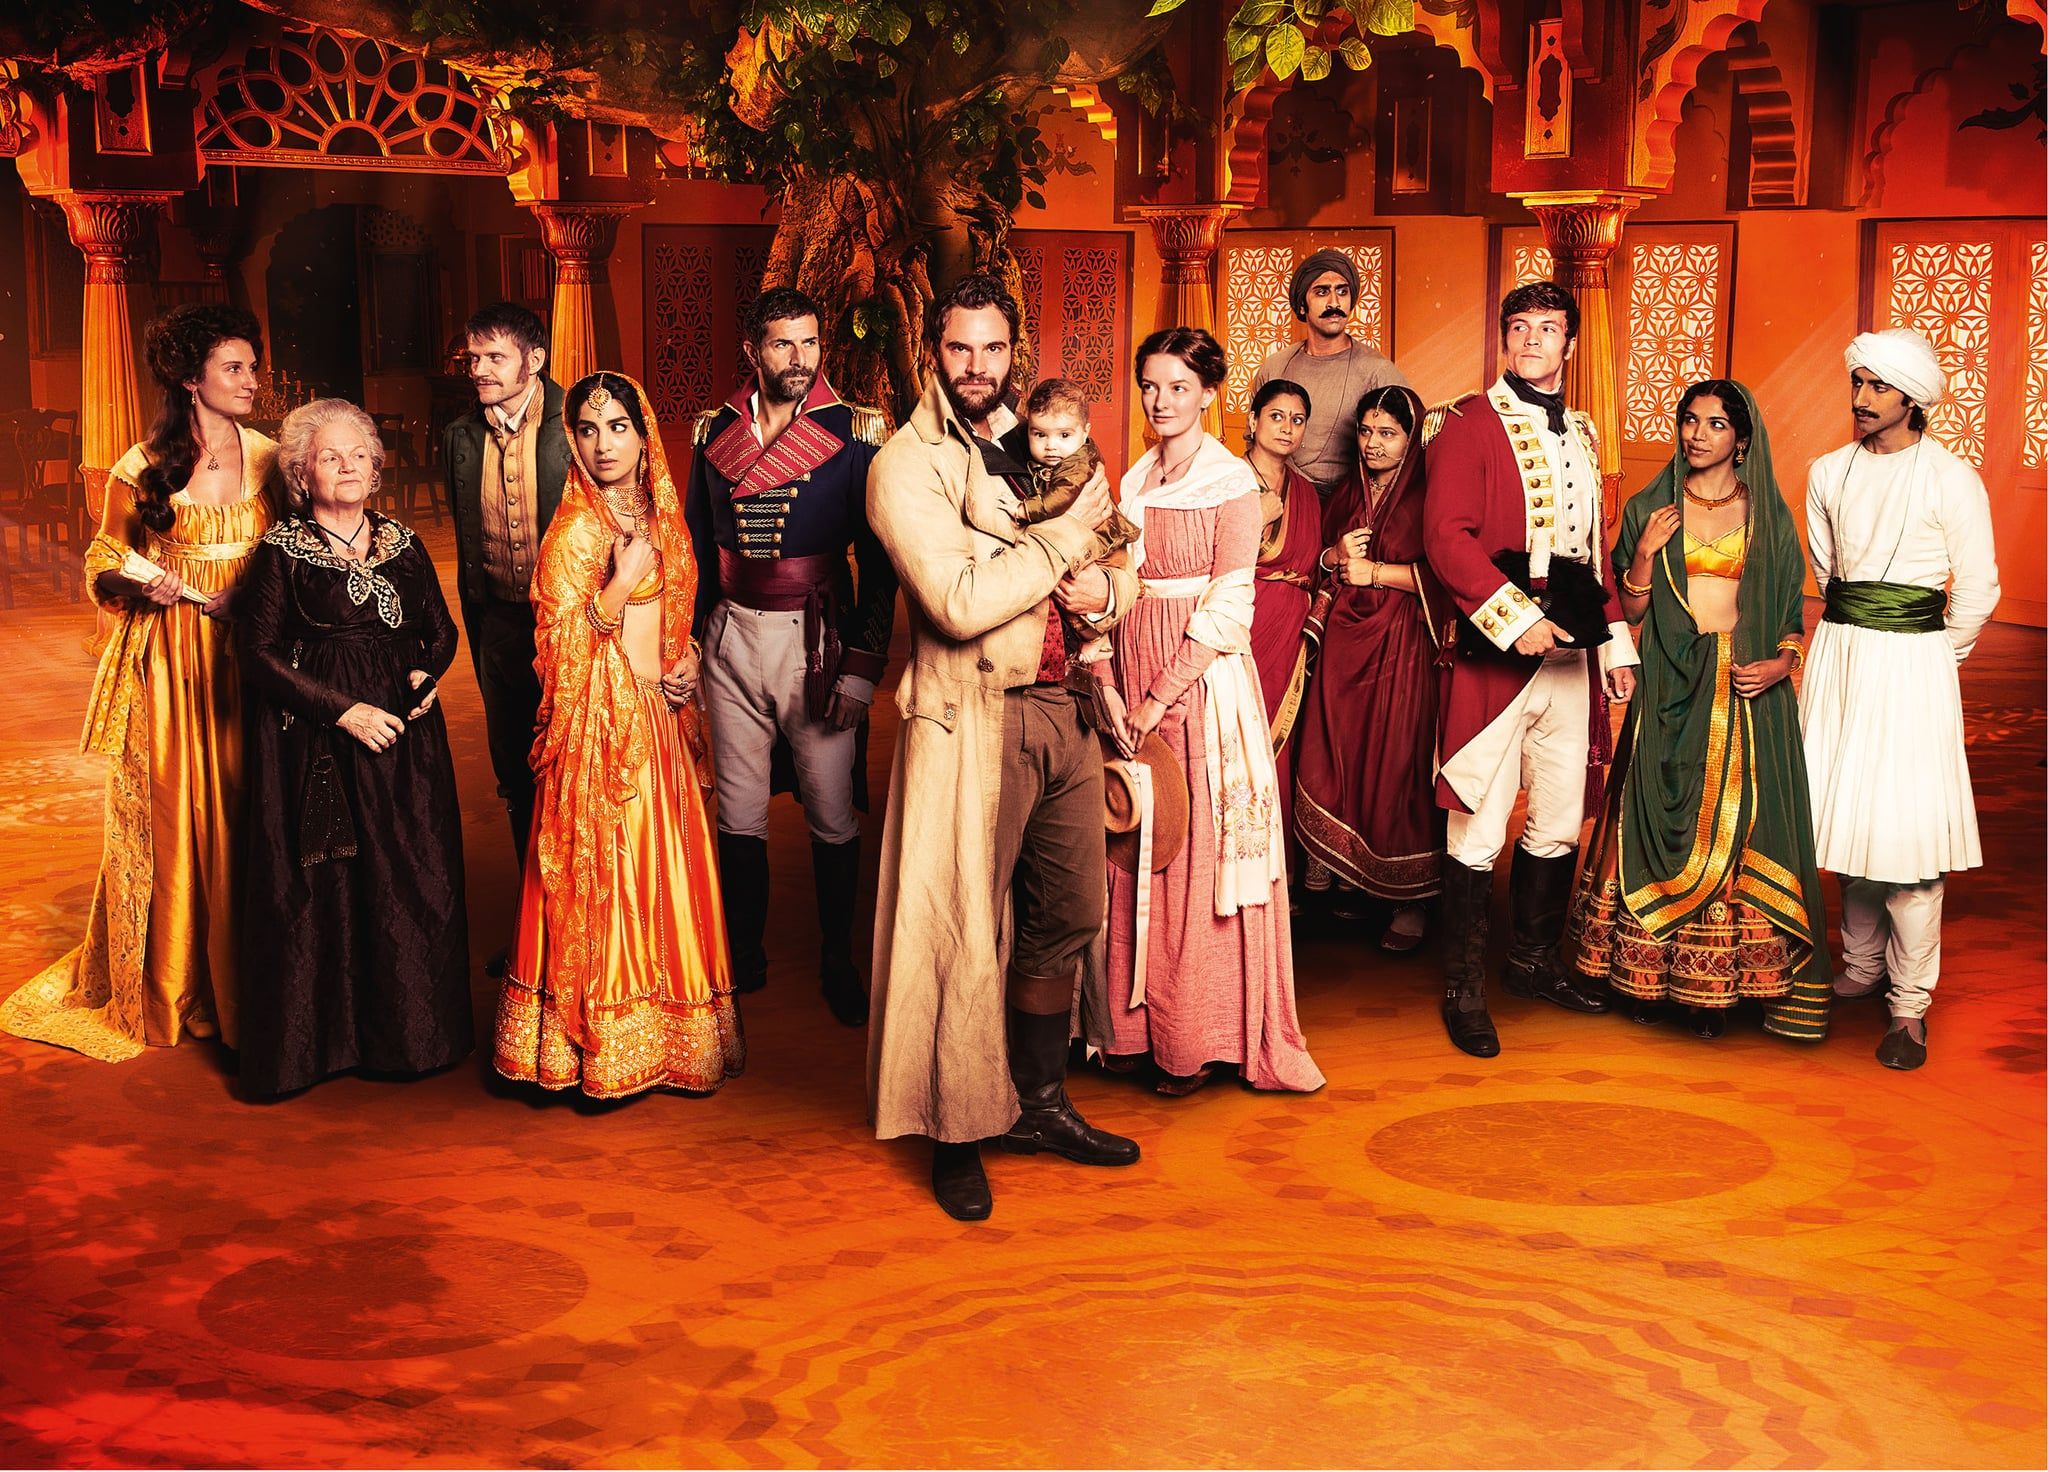 BEND IT TV FORITVBEECHAM HOUSEBEECHAM HOUSE FIRST LOOK PICTURESTom Bateman, Marc Warren, Lesley Nicol, Leo Suter, Dakota Blue Richards, Pallavi Sharda Bessie Carter and Viveik Kalra appear in epic and ambitious drama Beecham House airing on ITV this Spring. Produced by award winning production company Bend It TV, and directed and written by Gurinder Chadha OBE, the six part series is set in Delhi on the cusp of the 19th century. The drama depicts the fortunes of the residents of Beecham House, an imposing and beautiful mansion owned by enigmatic, soulful John Beecham, played by Tom Bateman, a former soldier determined to begin a new life with his family. However, John is haunted by his past and with dangerous enemies in high places, rival suitors competing for his heart and discord with family members, his plan for a new life does not run smoothly. The series also features Gregory Fitoussi, Adil Ray, Laura Dutta and Shriya Pilgaonkar.Beecham House is written by Gurinder Chadha, Paul Mayeda Berges (Viceroys House, The Mistress of Spices, Angus, Thongs and Perfect Snogging) Victor Levin (Destination Wedding, Mad Men, Mad About You) and Shahrukh Husain. Caroline Levy (Hooten & the Lady, Inspector George Gently, The Mill) is the Series Producer.  Acclaimed writer and international renowned expert on this period in India, William Dalrymple, and Shahrukh Husain are historical consultants for the series. FremantleMedia International will act as the global distributor for the series.Pictured L-R:BESSIE CARTER as Violet,LESLEY NICOL as Henrietta,MARC WARREN as Samuel, PALLAVI SHARDA as Chandrika,GREGORY FITOUSSI as General Castillon,TOM BATEMAN as John Beecham,DAKOTA BLUE RICHARDS as Margaret,GOLDY NOTAY as Bindu,AMER CHADHA-PATEL as Ram Lal,TRUPTI KHAMKAR as Maya,LEO SUTER as Daniel,SHRIYA PILGAONKAR as Chanchal and VIVEIK KALRA as Baadal.This photograph must not be syndicated to any other company, publication or website, or permanently archived, without the express written permission of ITV Picture Desk. Full Terms and conditions are available on  www.itv.com/presscentre/itvpictures/termsCopyright: ITV,FREMANTLEFor further information please contact:Patrick.smith@itv.com 0207 1573044